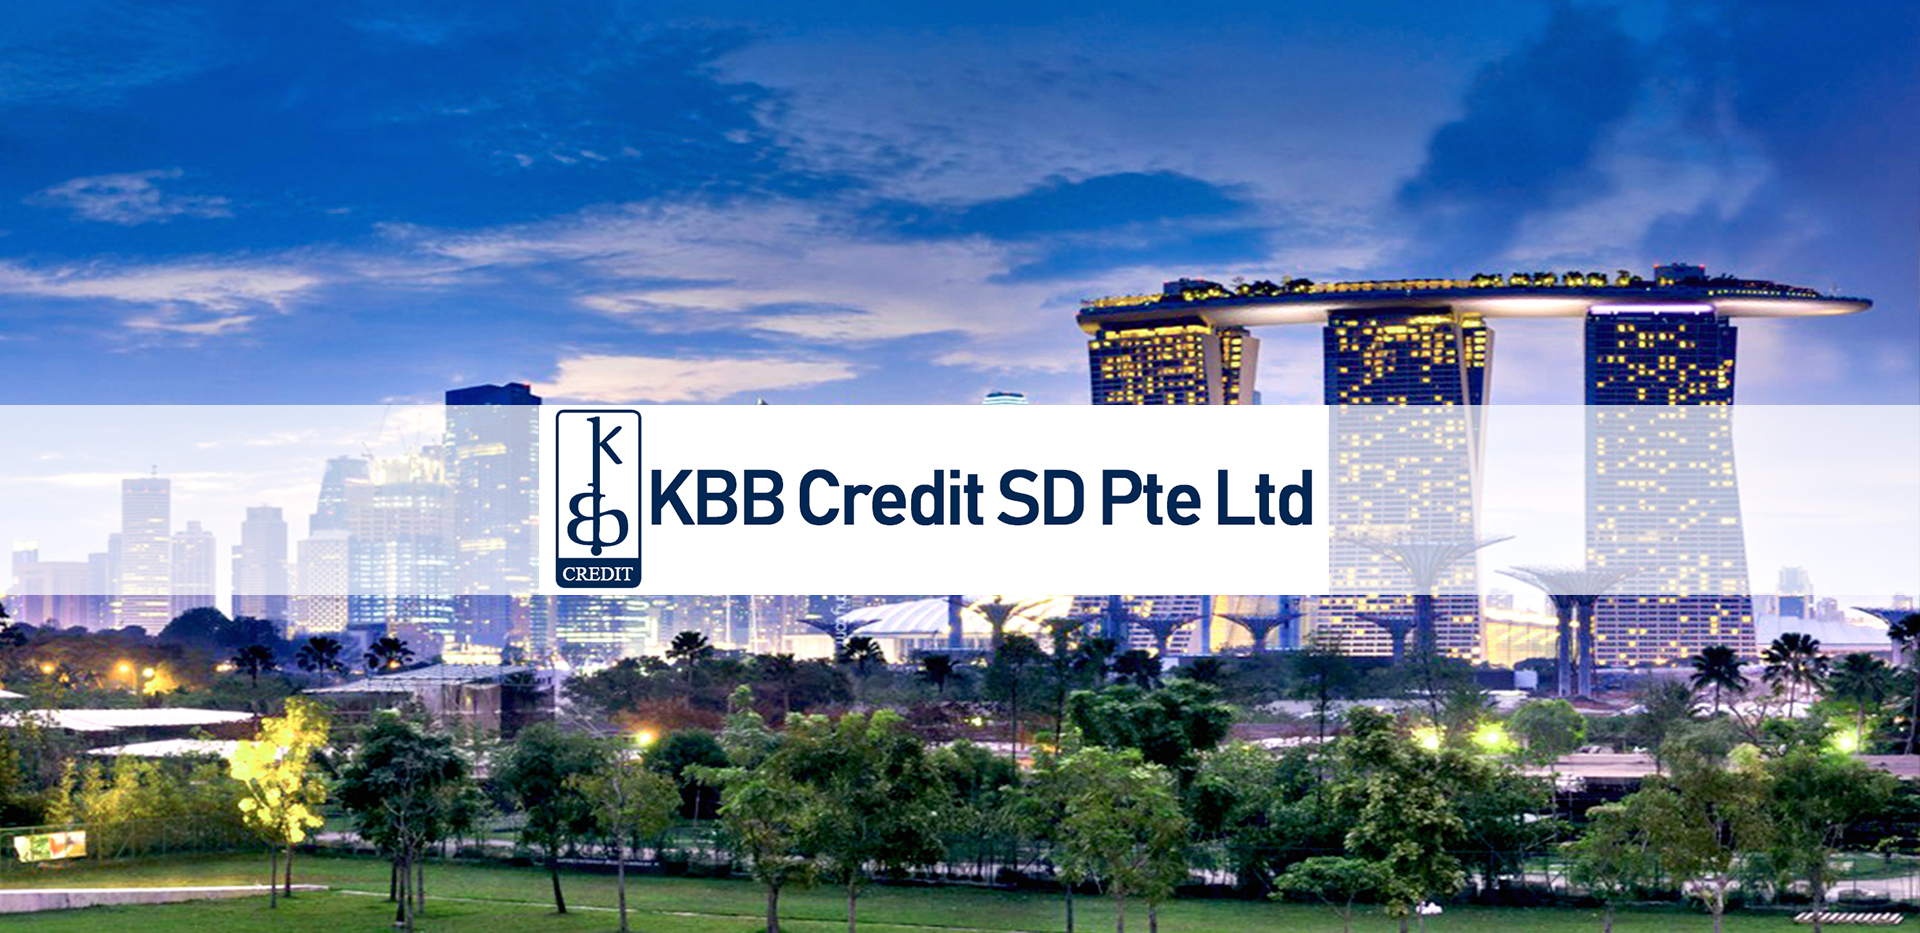 sgwithlogo kbb-credit-sd-pte-ltd